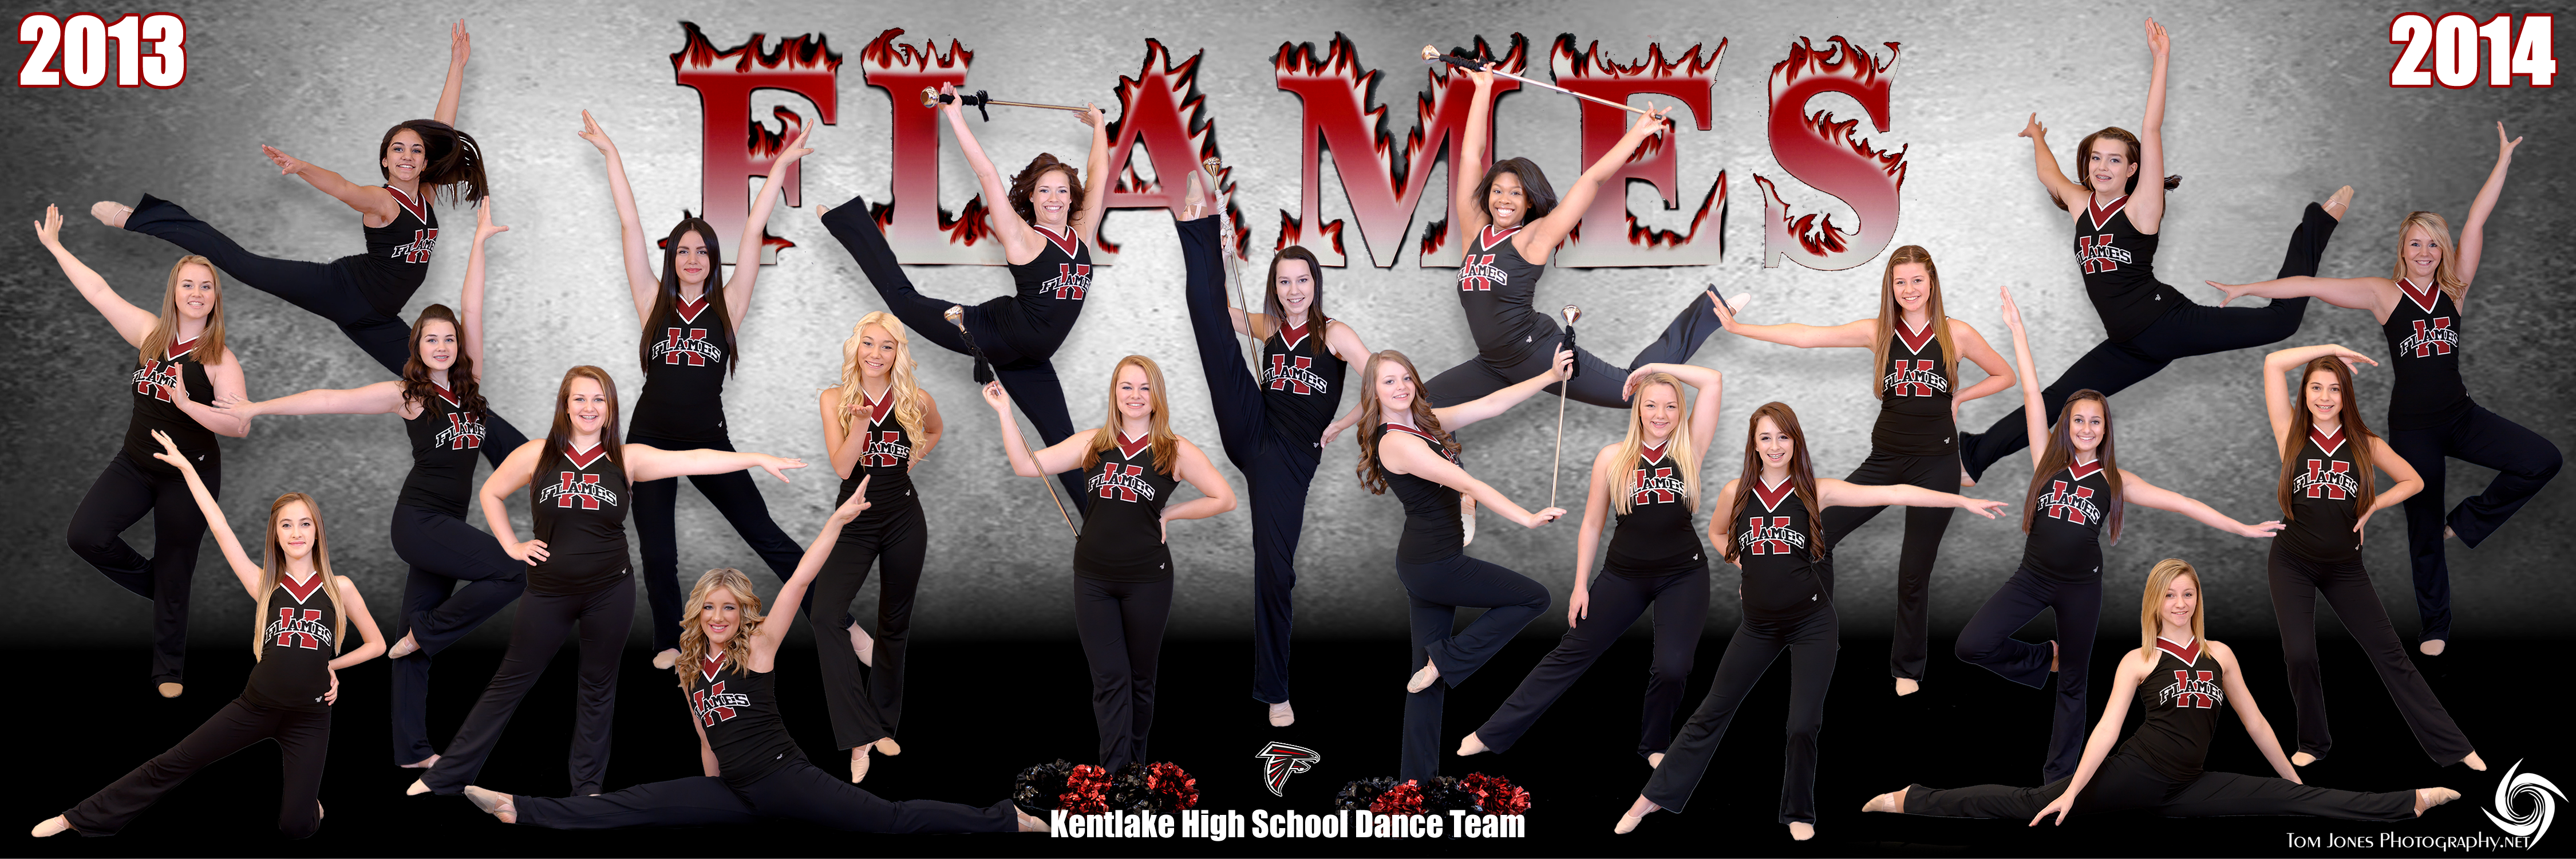 2013-2014 Flames Dance Team